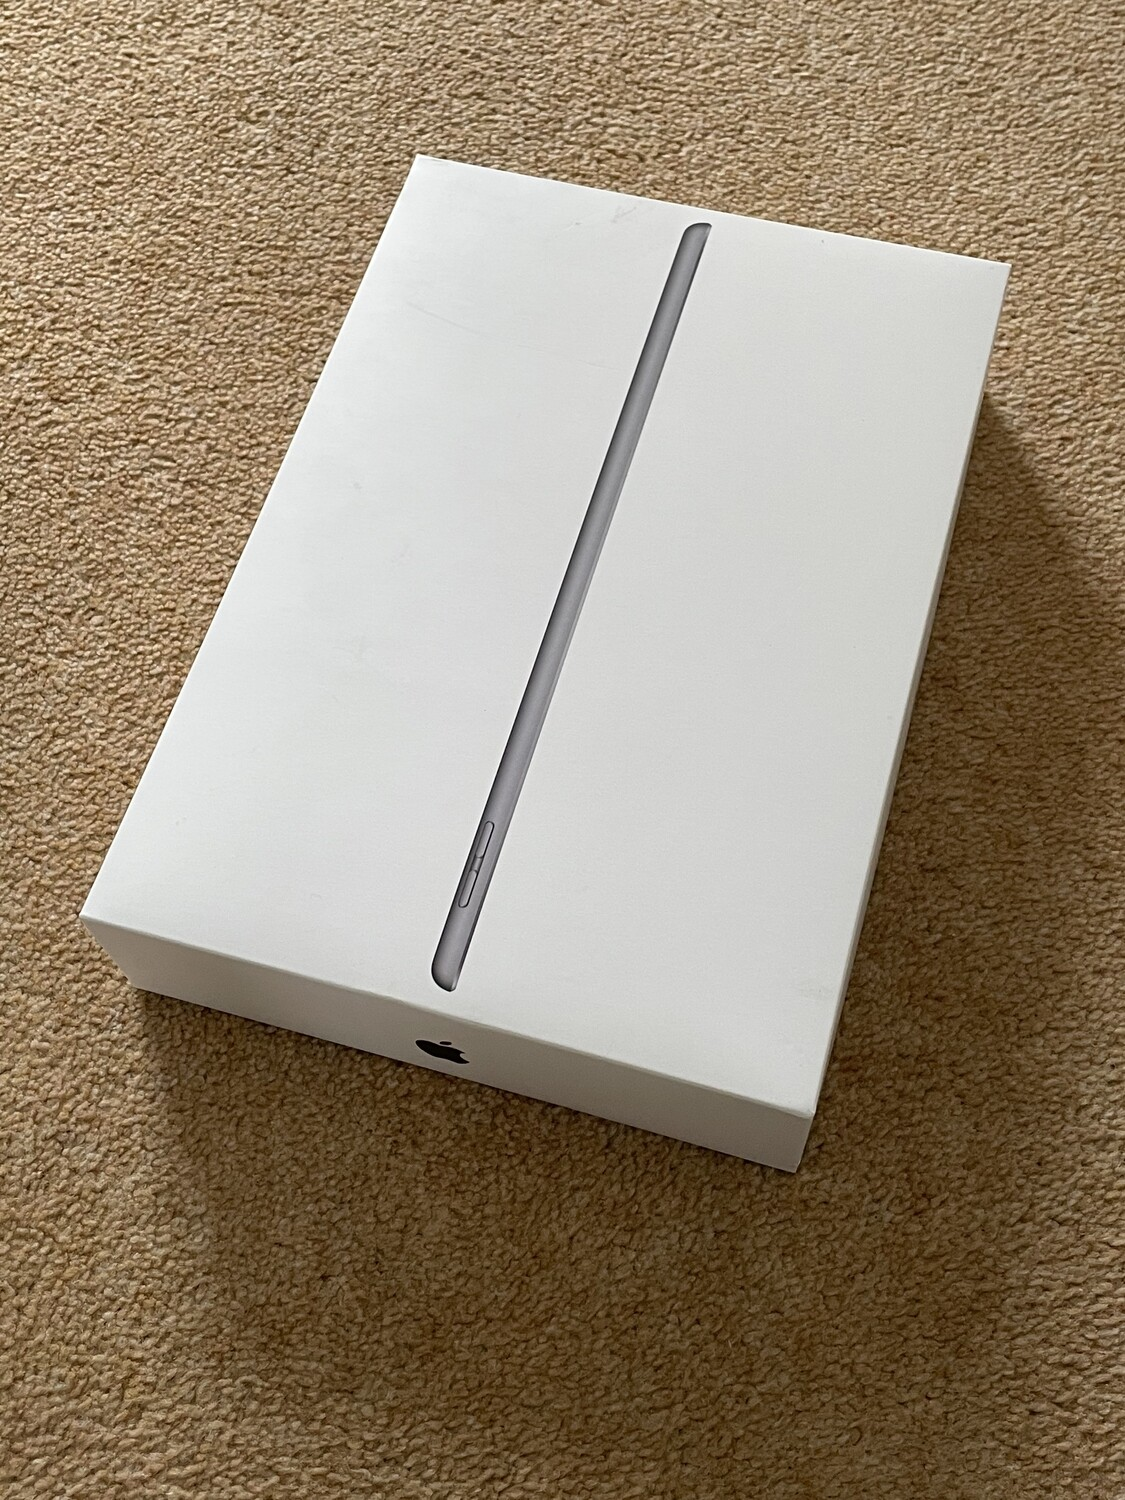 Apple iPad 8th generation box 32GB Space Gray for school funds (NO charger or Lighting cable or iPad)